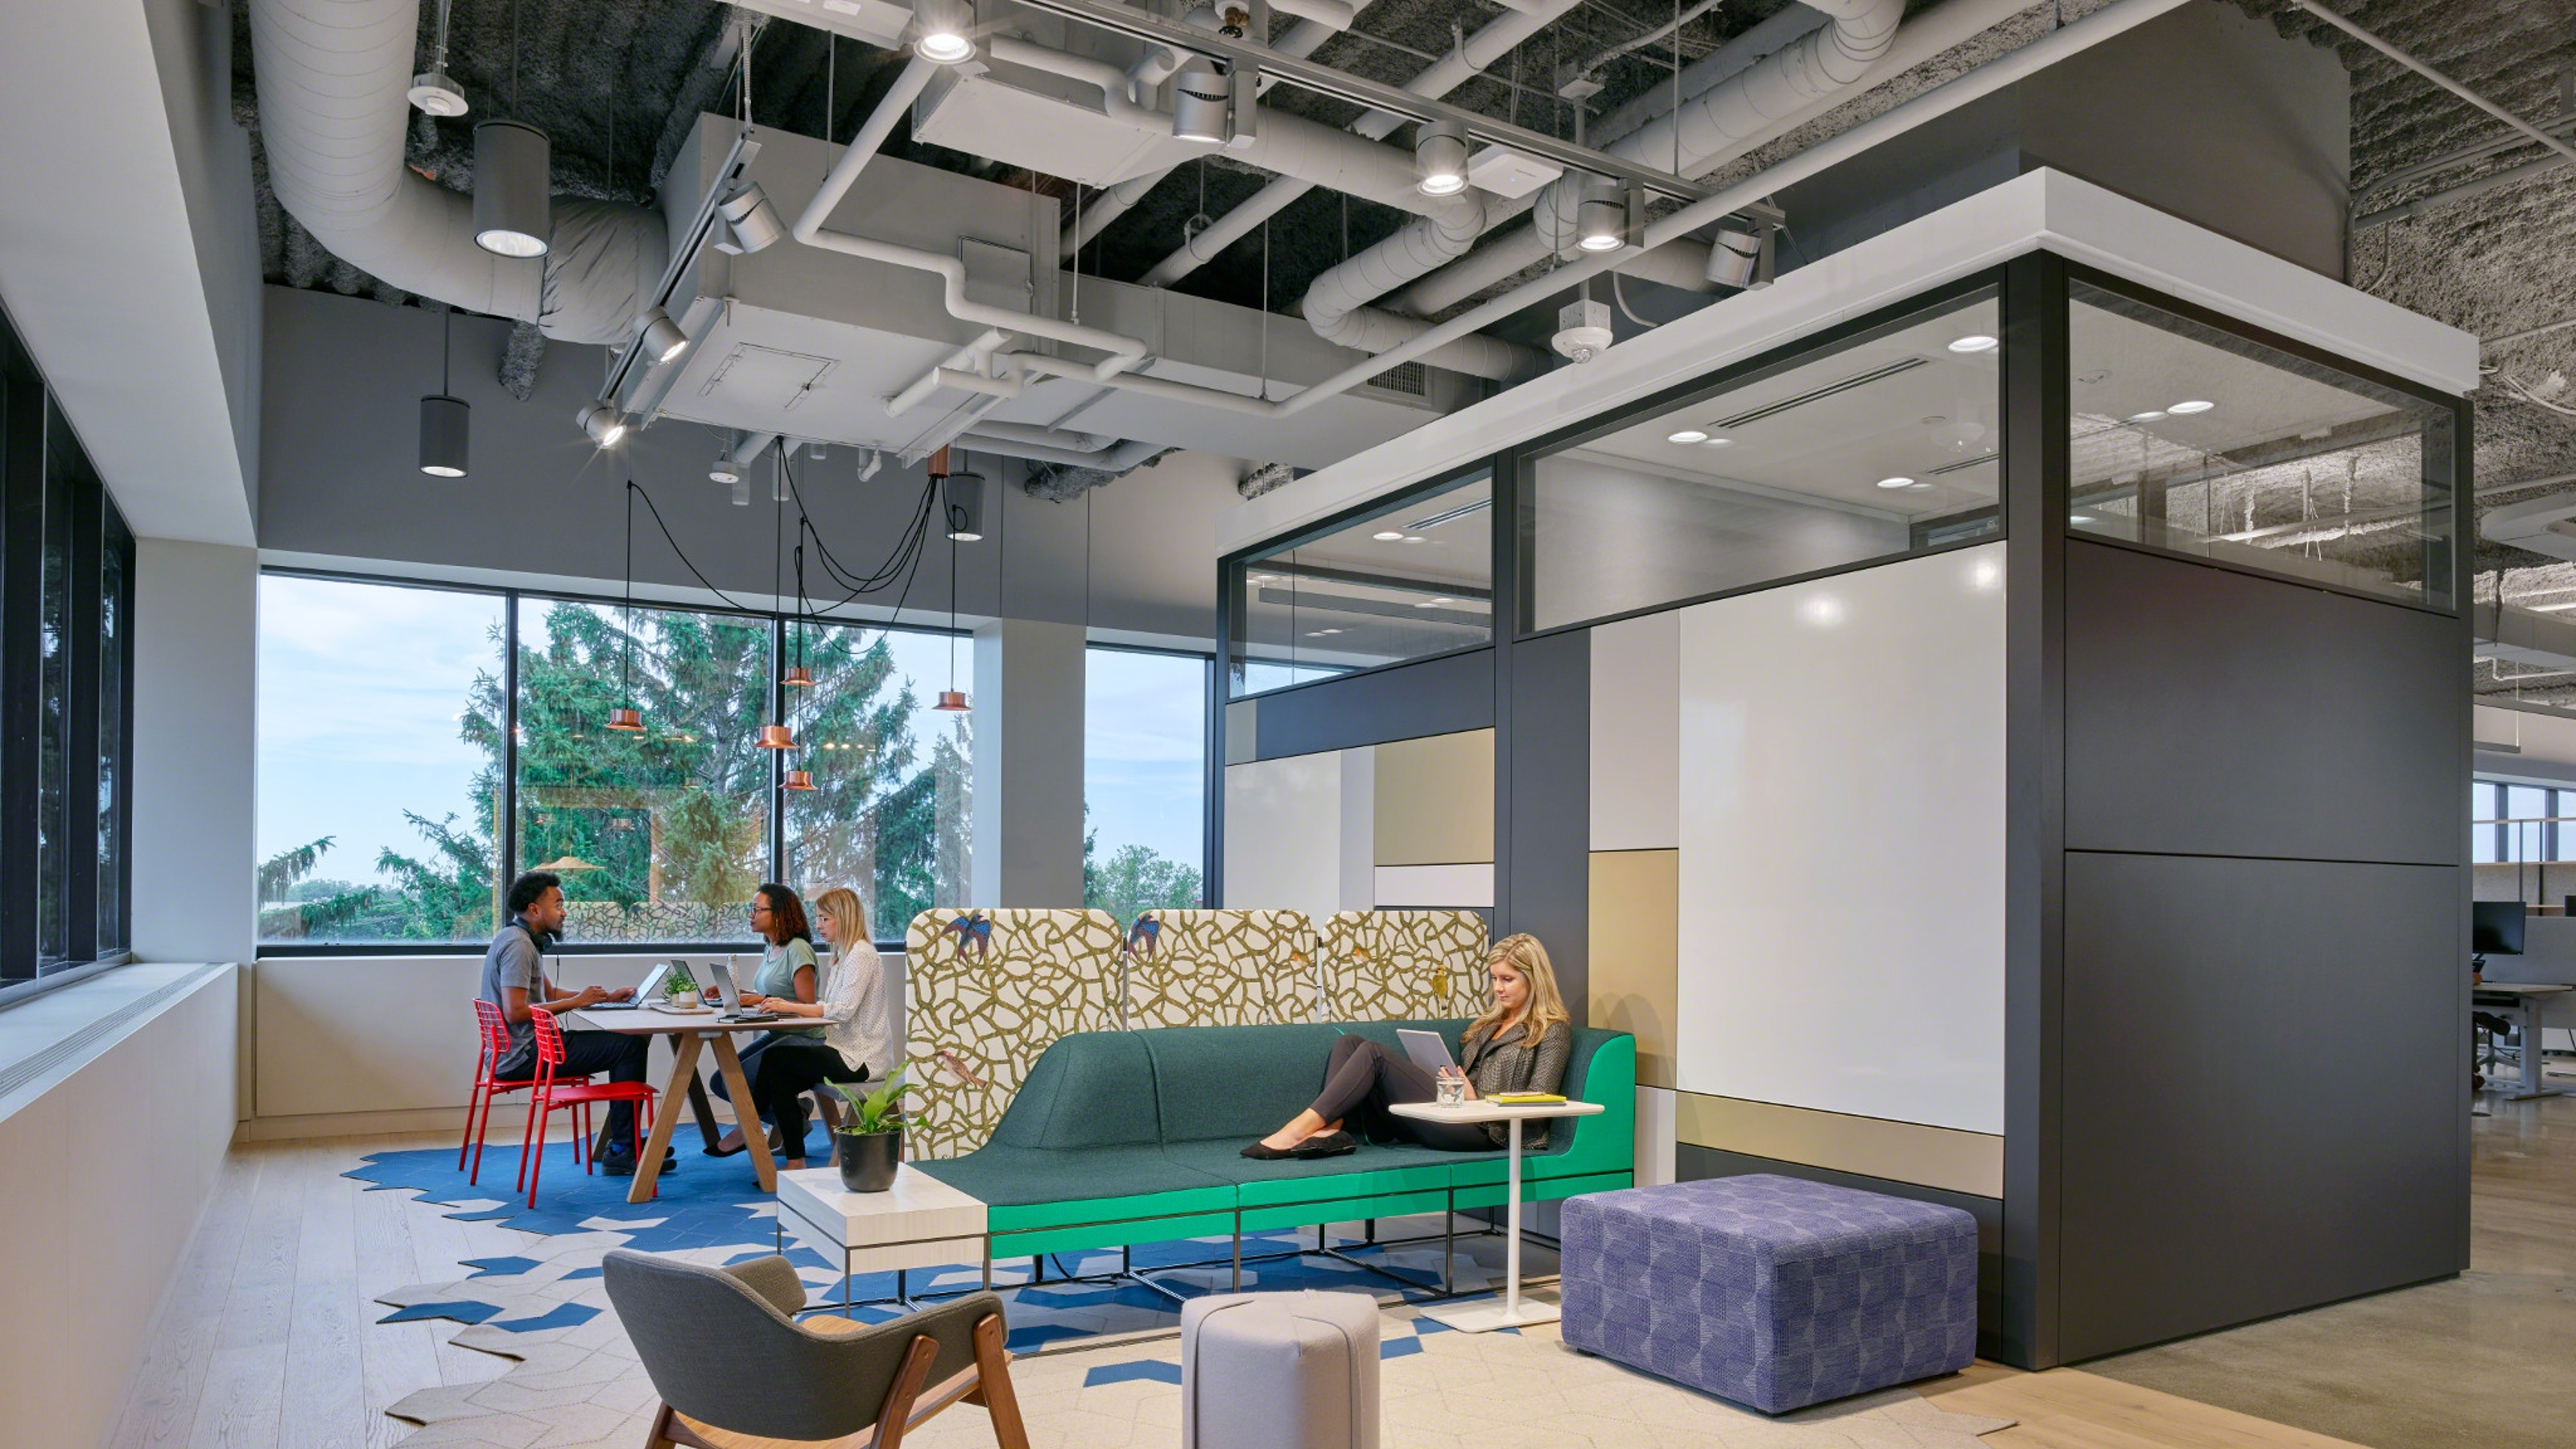 Office Design Trends for 2020: A Focus on Wellbeing | Steelcase